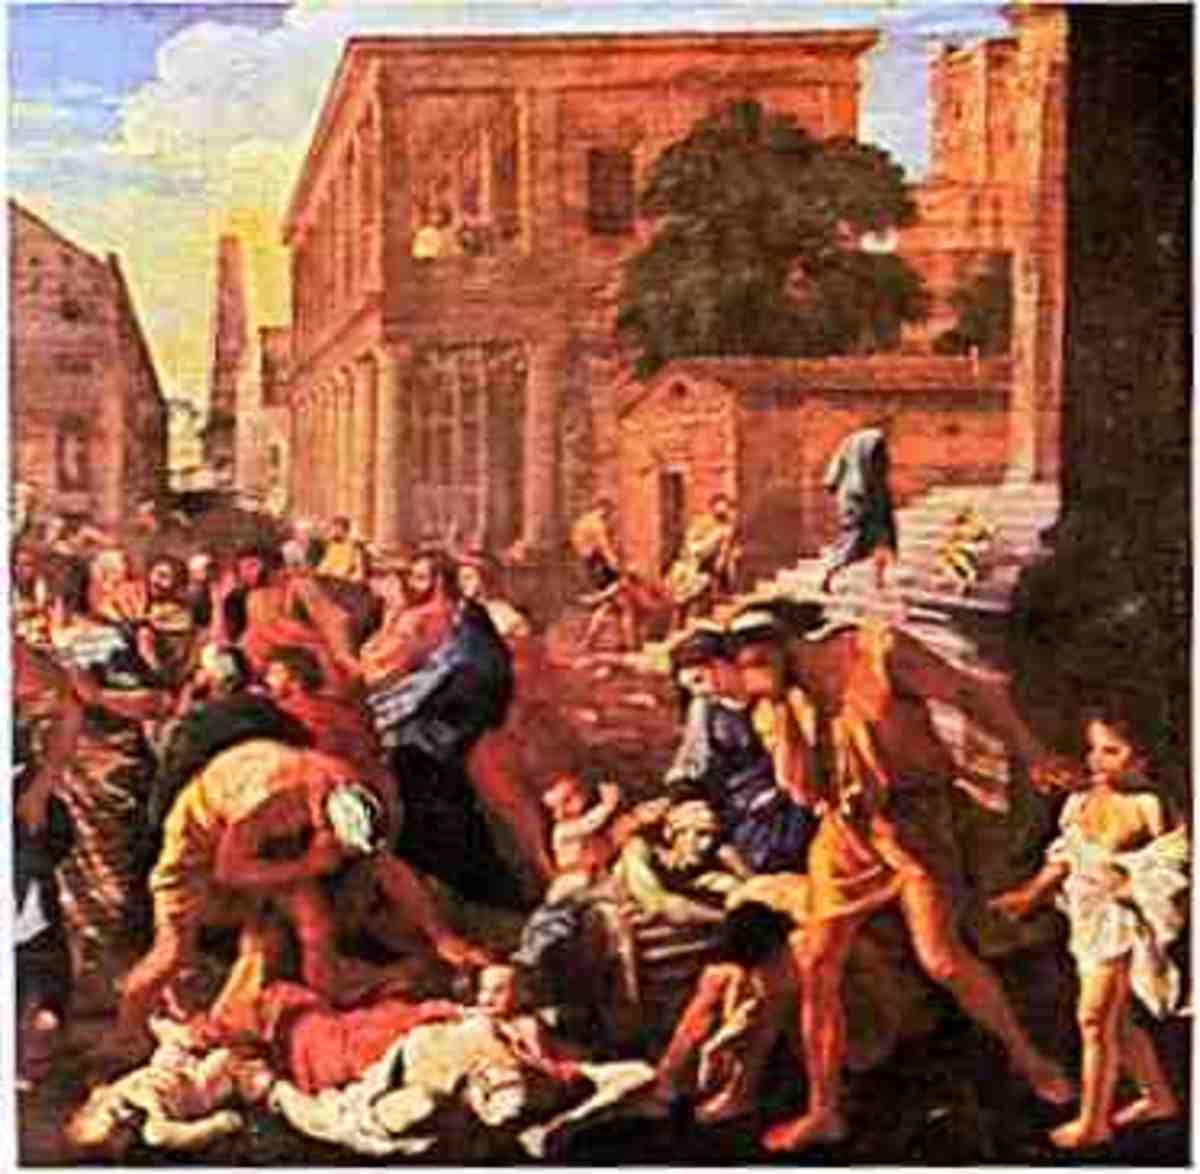 A common scene in a large metropolitan area at the height of the Black Death!